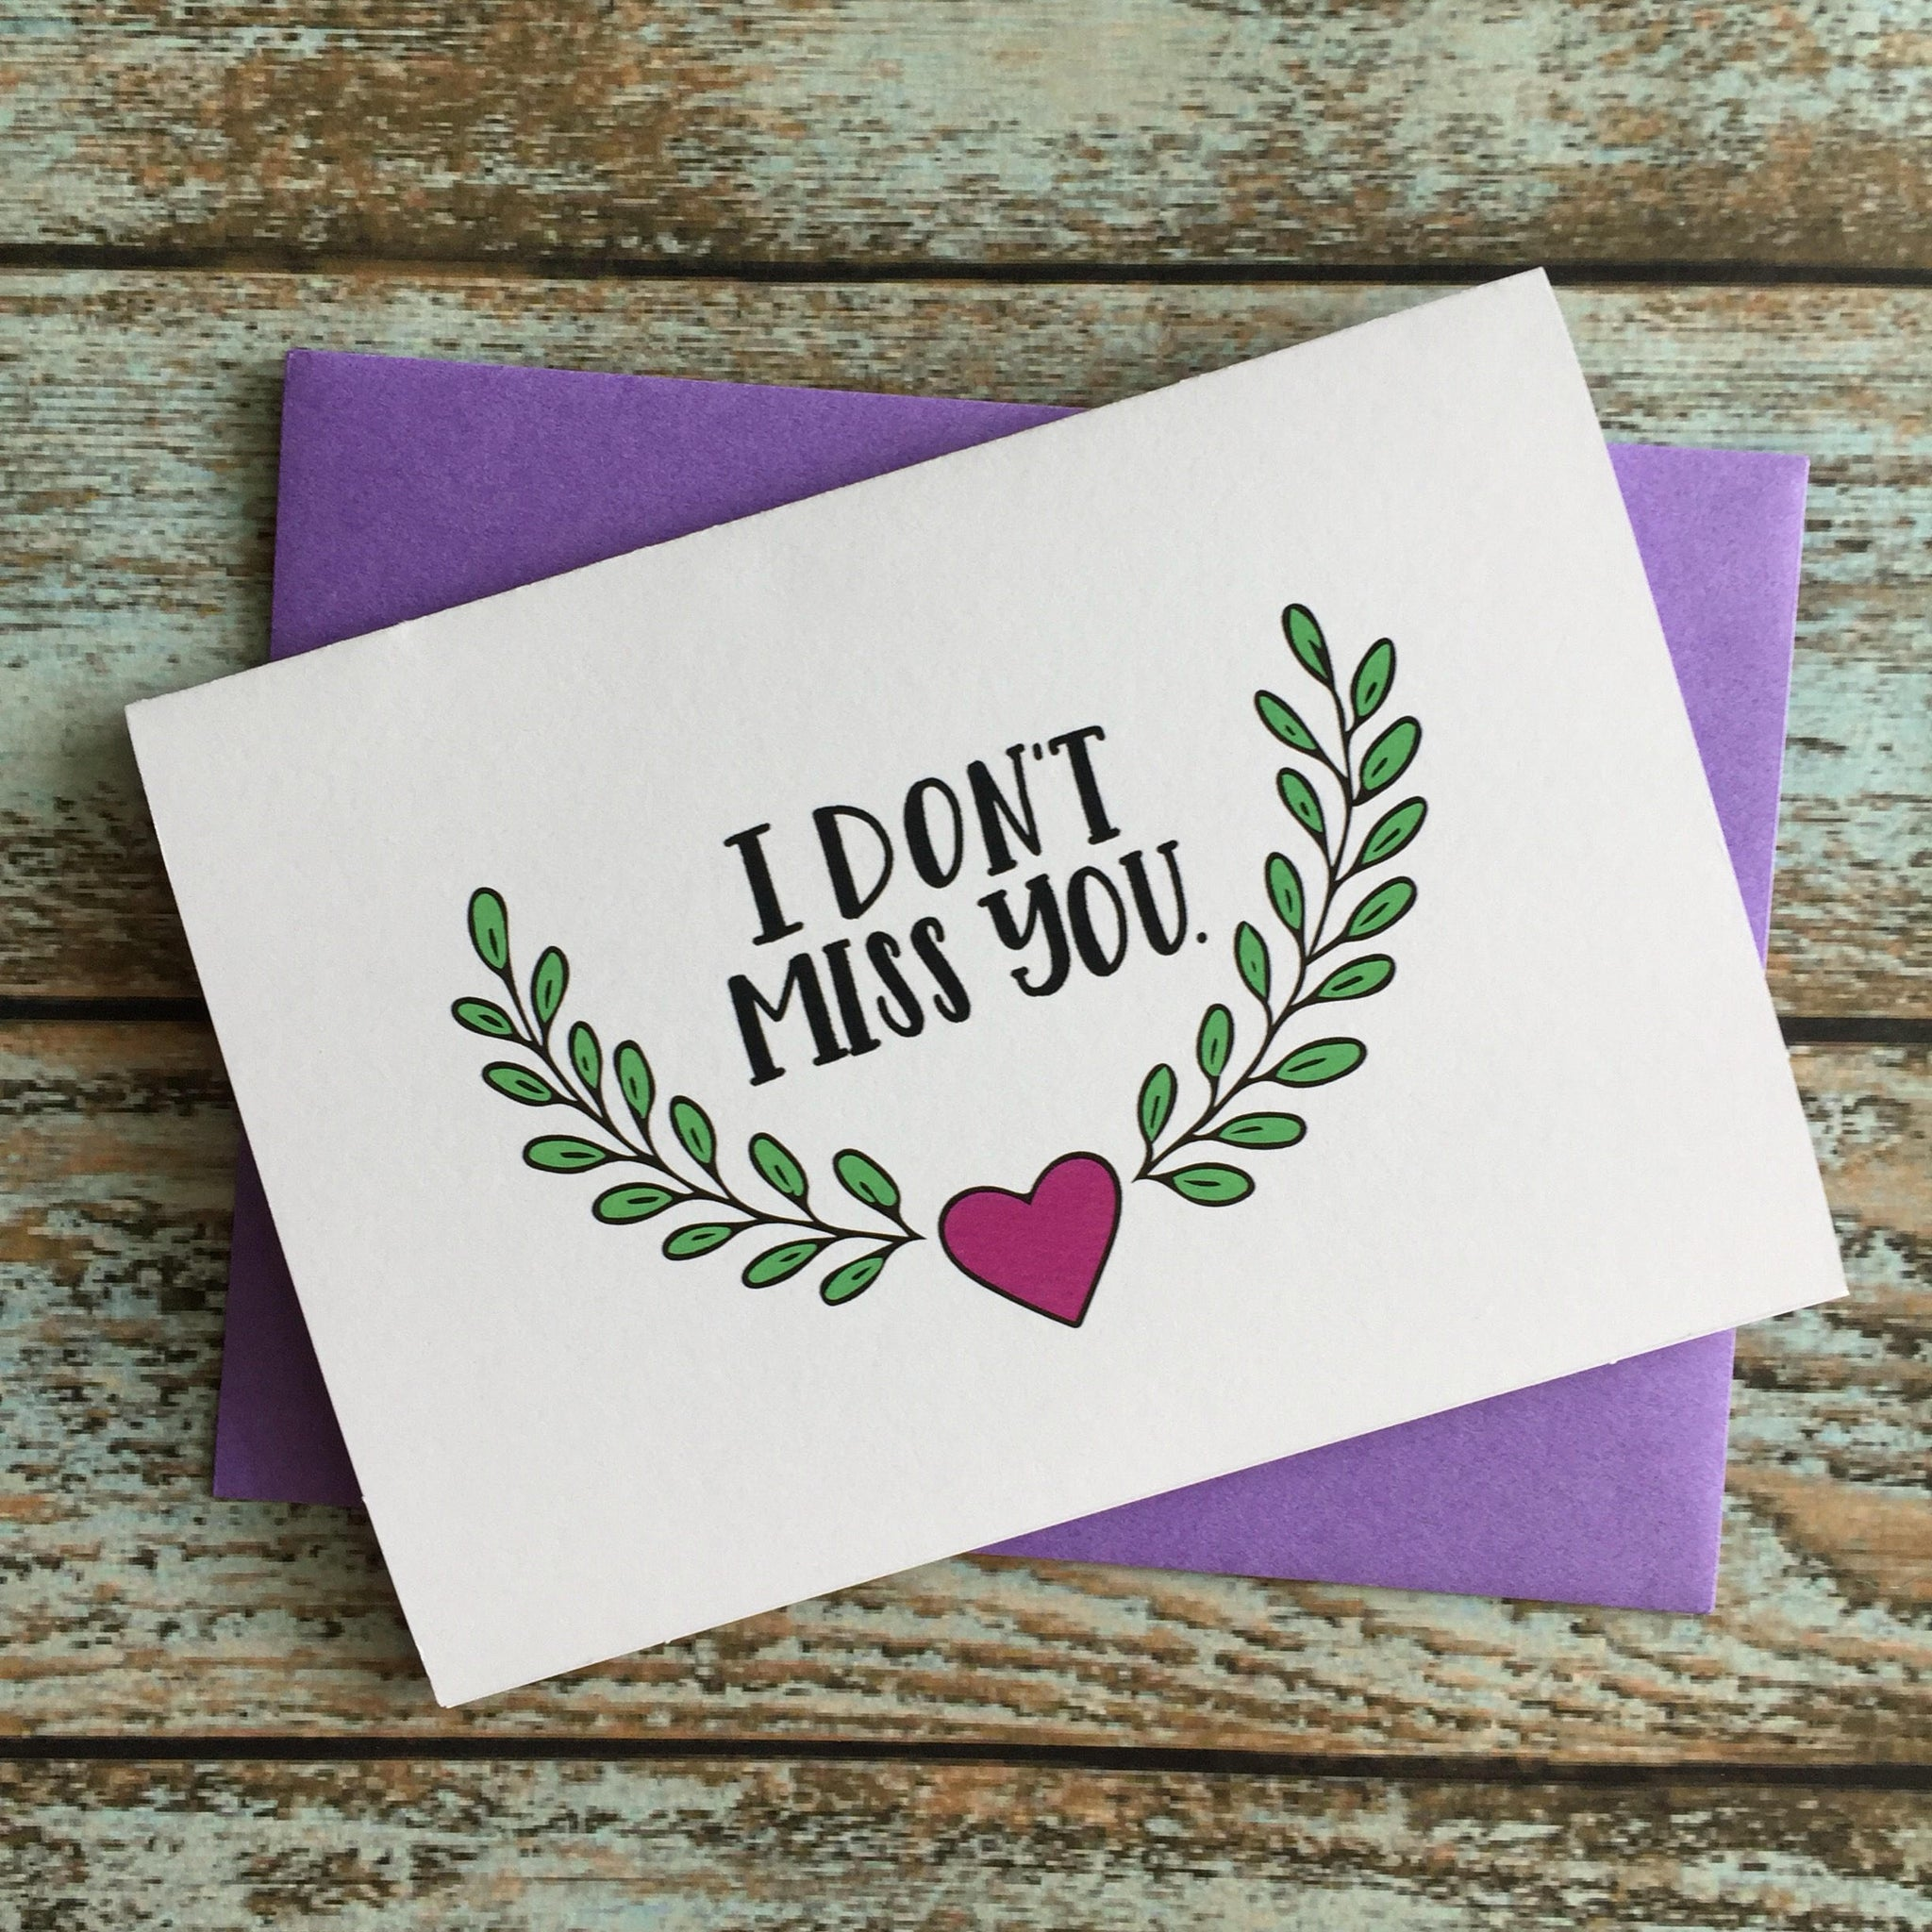 I Dont Miss You friendship // moving away card // Silly Card // Miss you Card // College moving Card // Card for her // Card for him